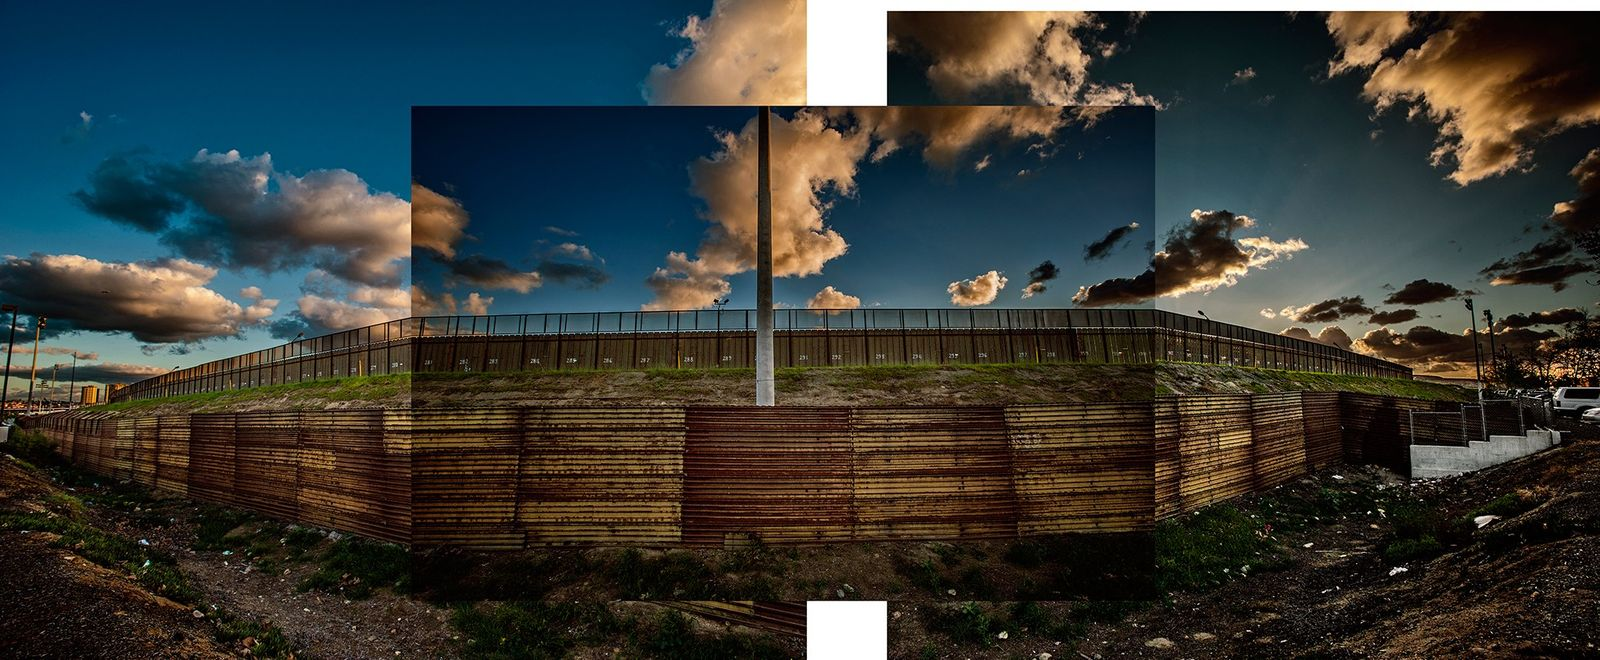 See the wall that President Trump wants to extend